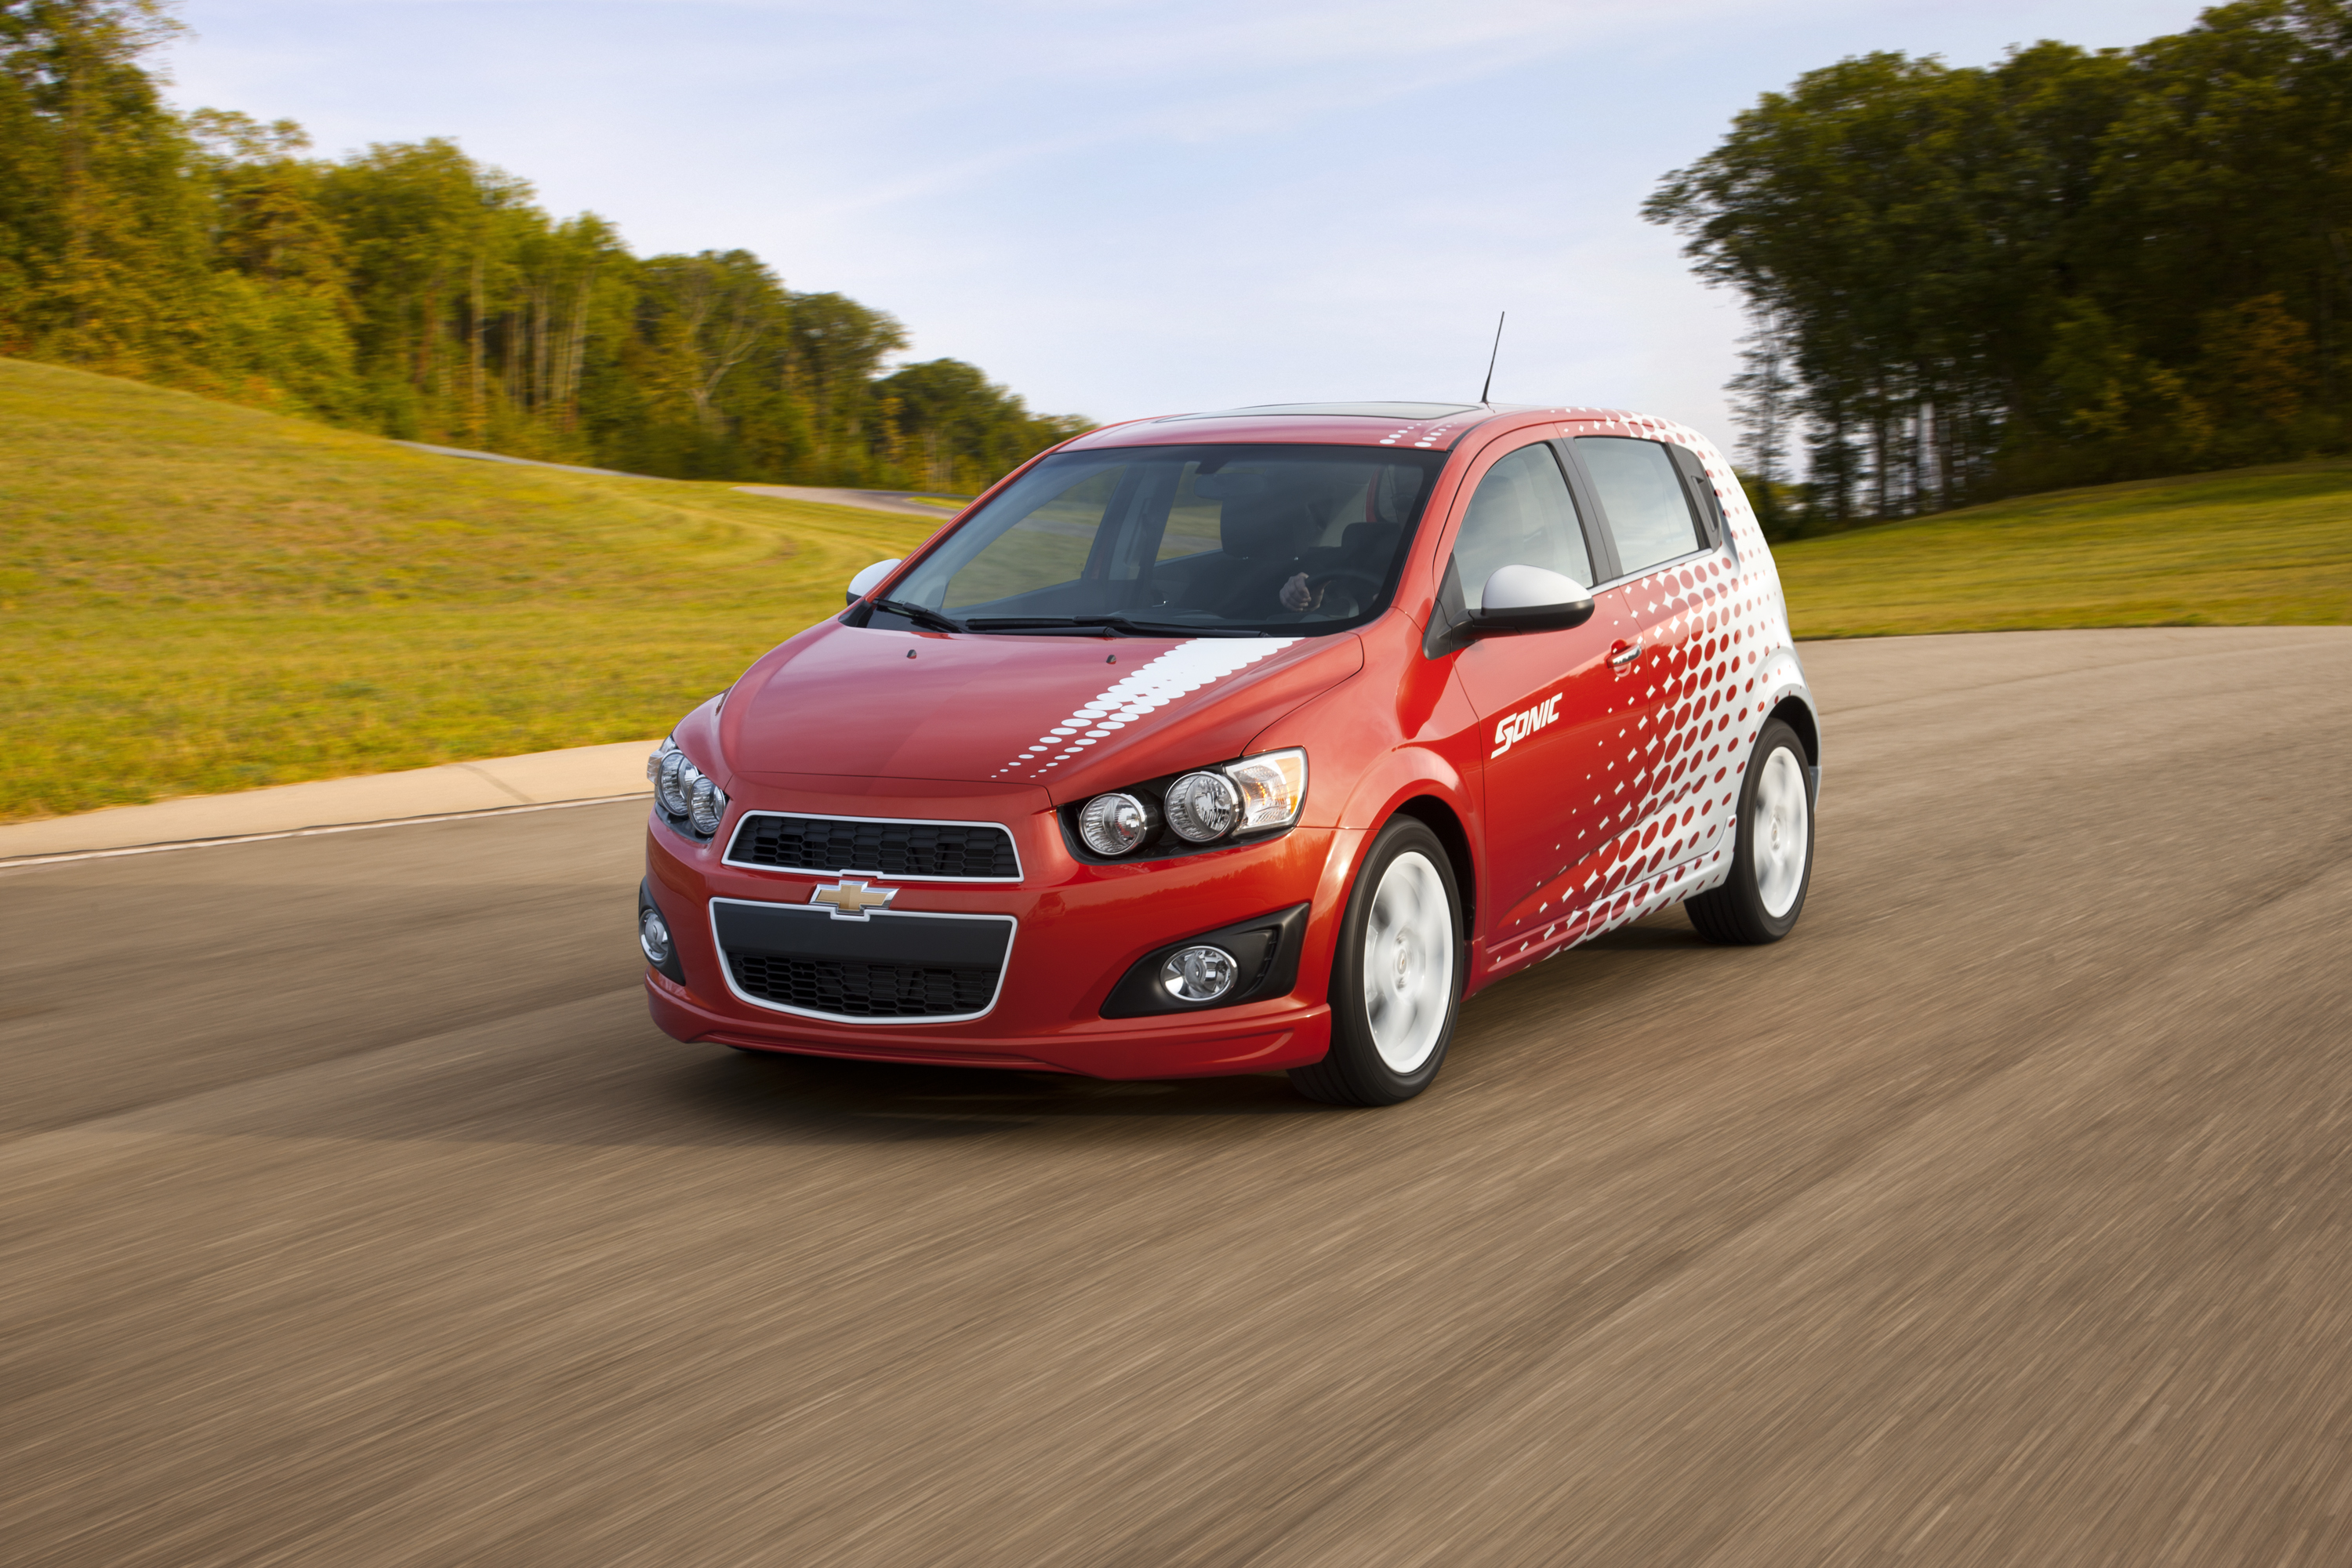 Chevrolet Sonic Gets Sporty With Z-Spec Accessories